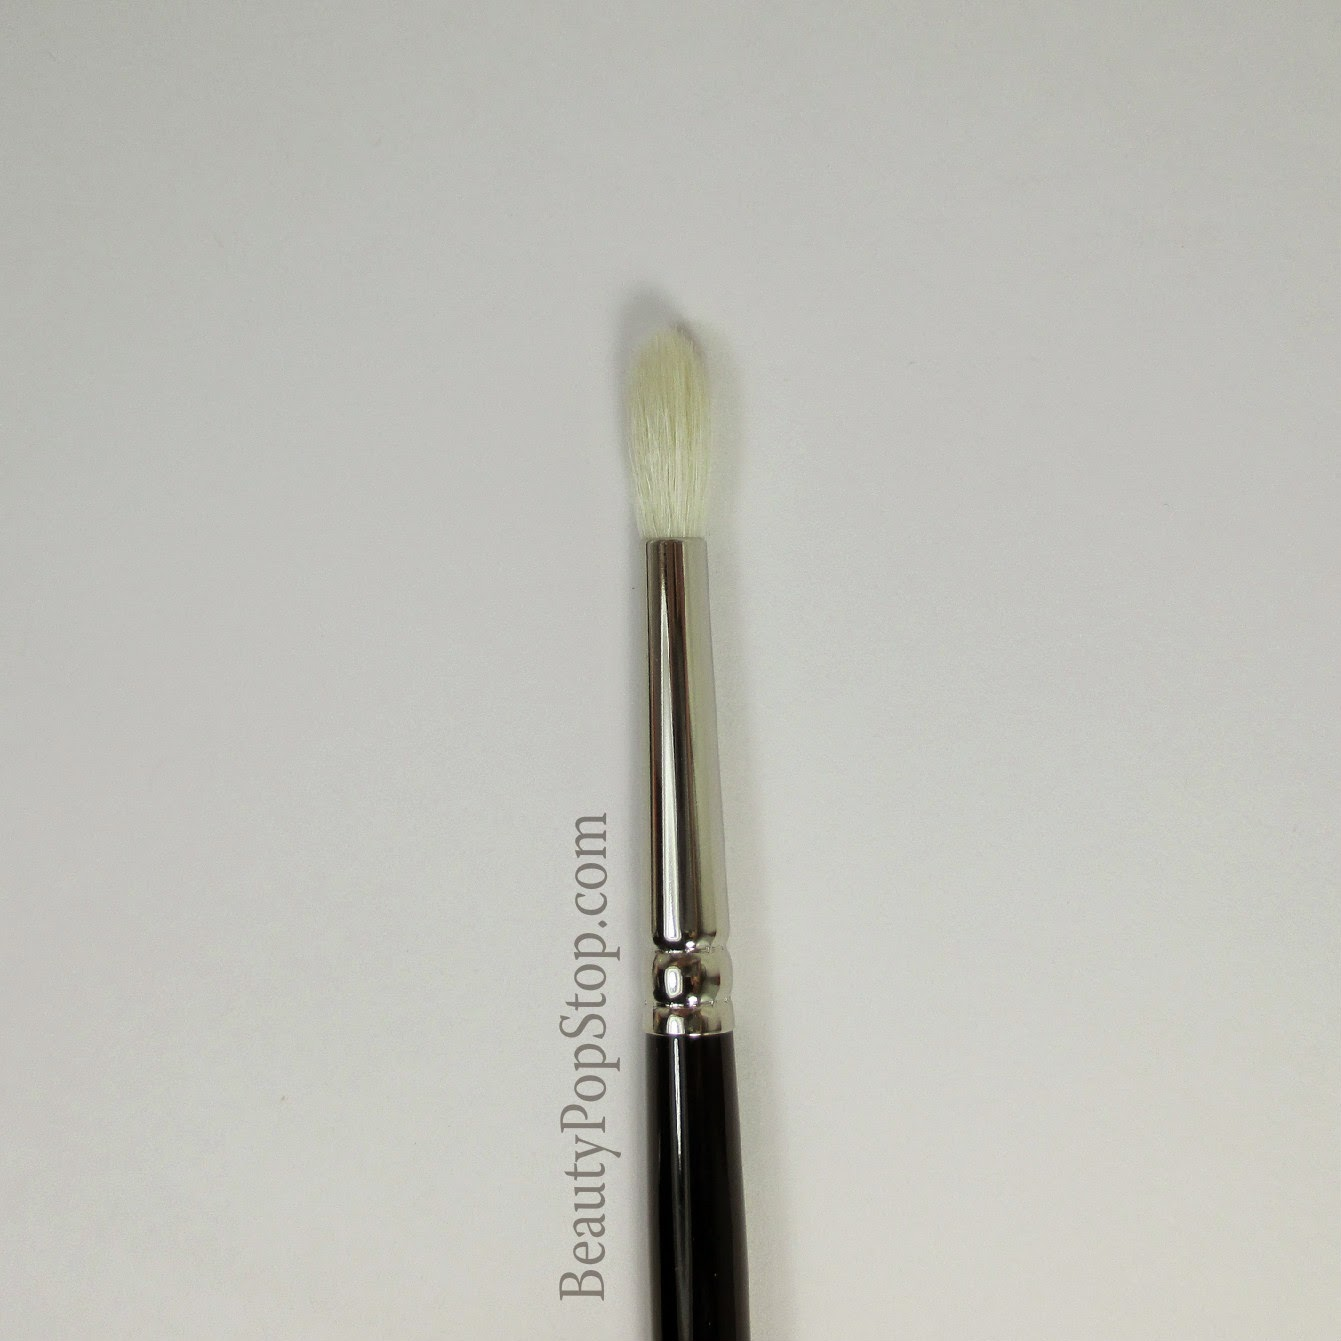 Hakuhodo j146 japanese makeup brush review